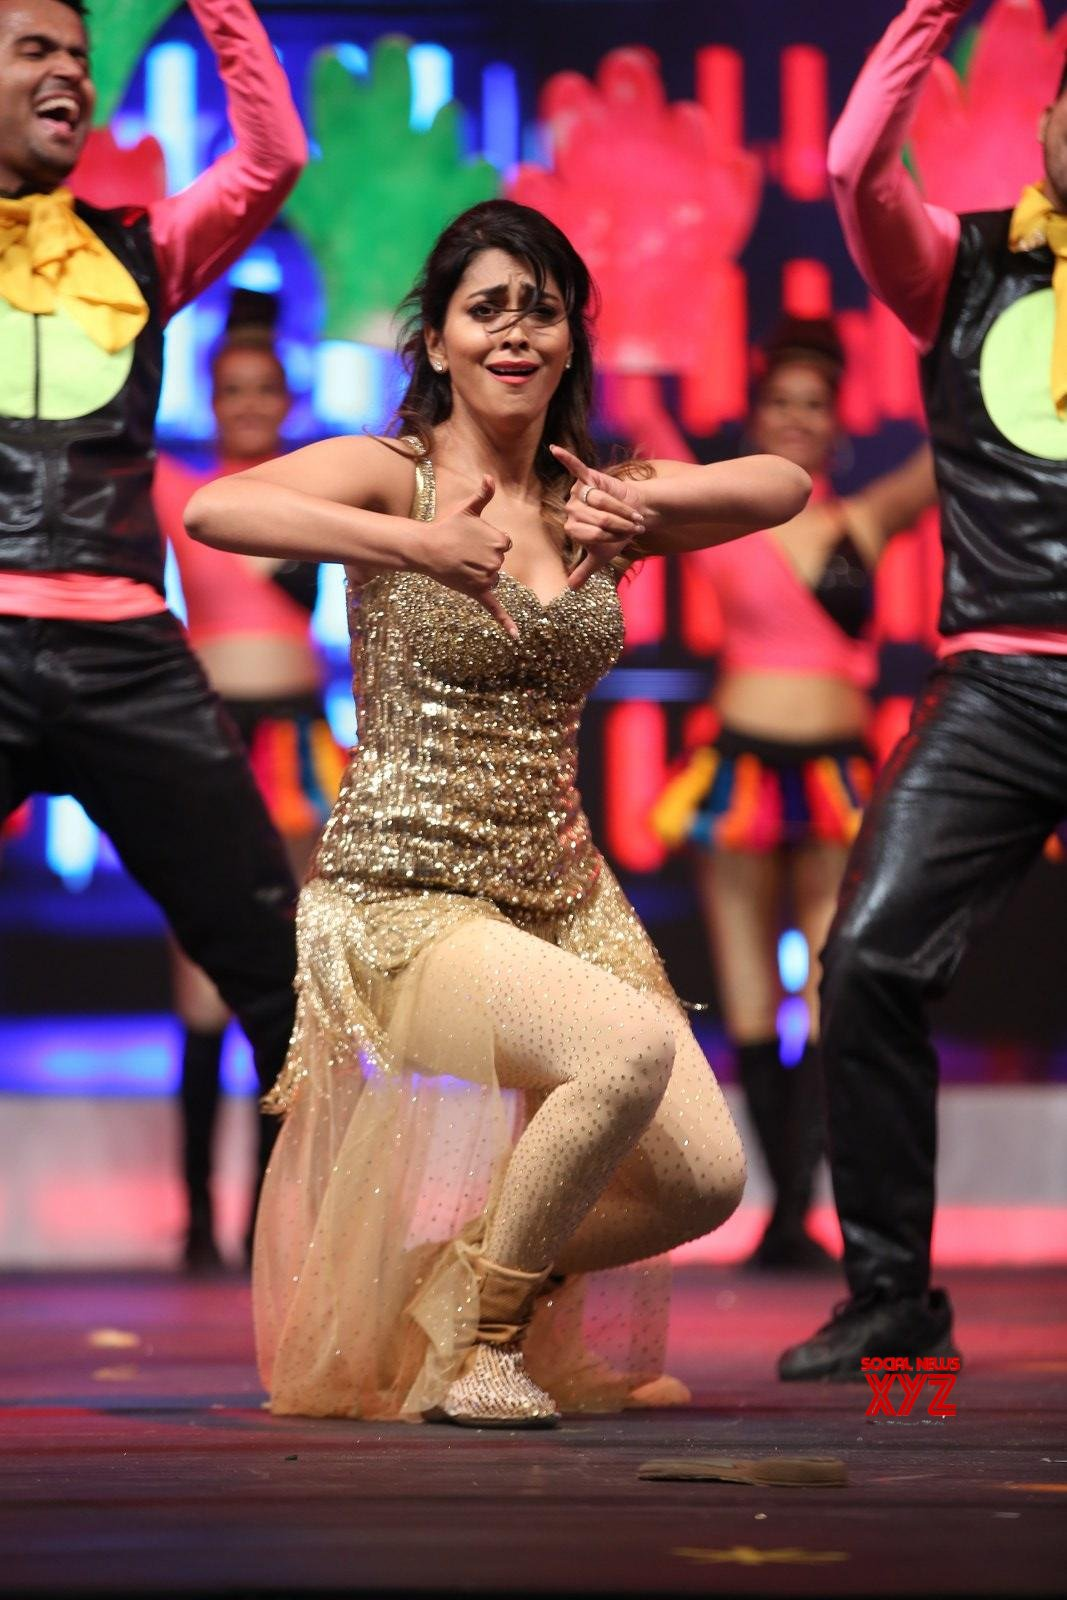 Actress Shriya Saran Dance Performance Stills From SIIMA Awards 2019